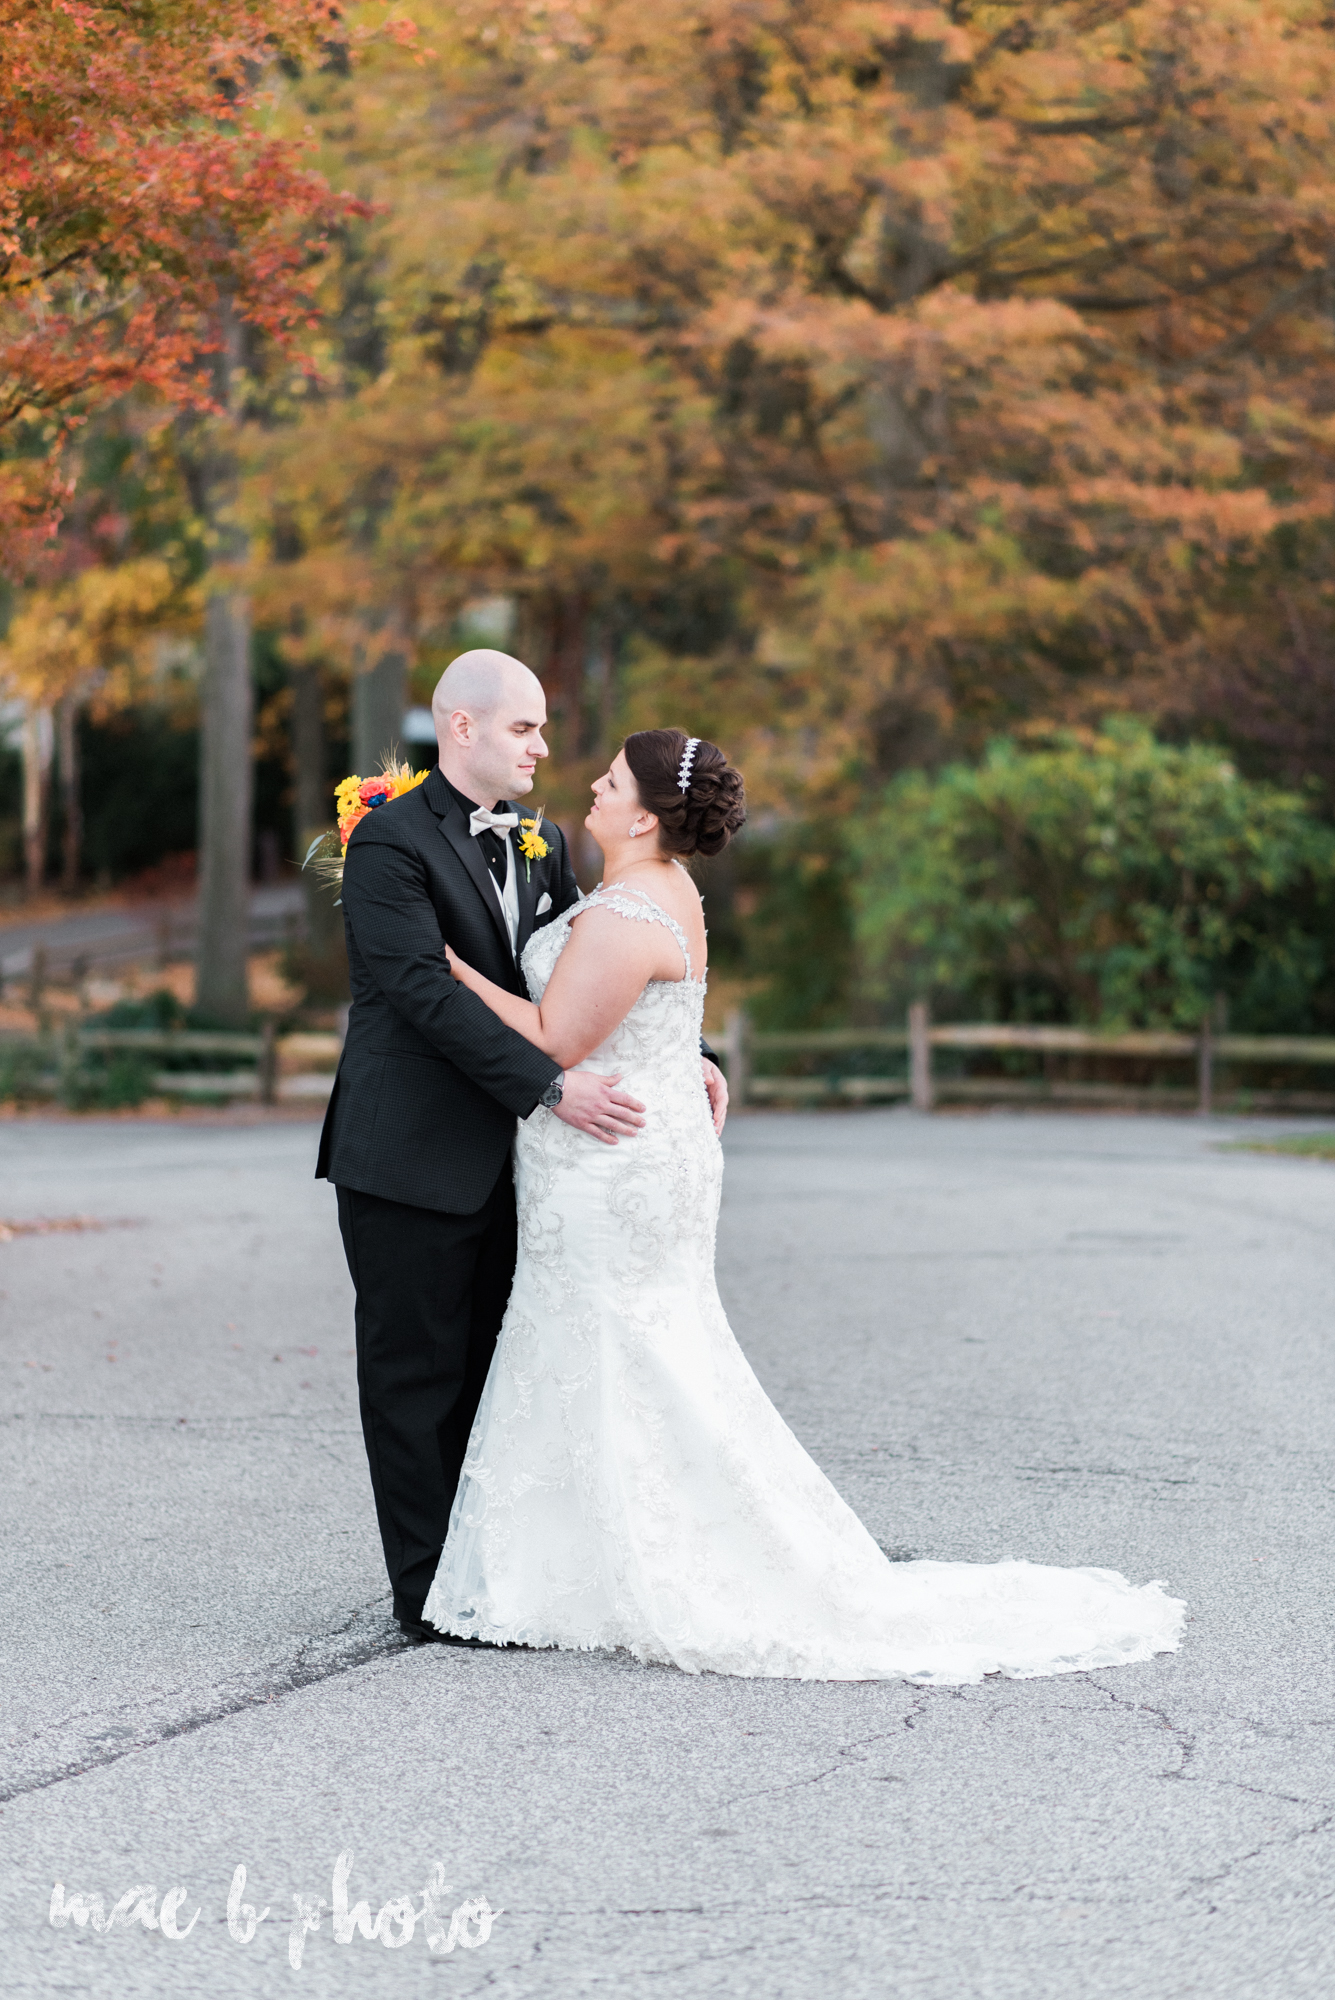 kaylynn & matt's fall zoo wedding at the cleveland metroparks zoo in cleveland ohio photographed by mae b photo-22.jpg